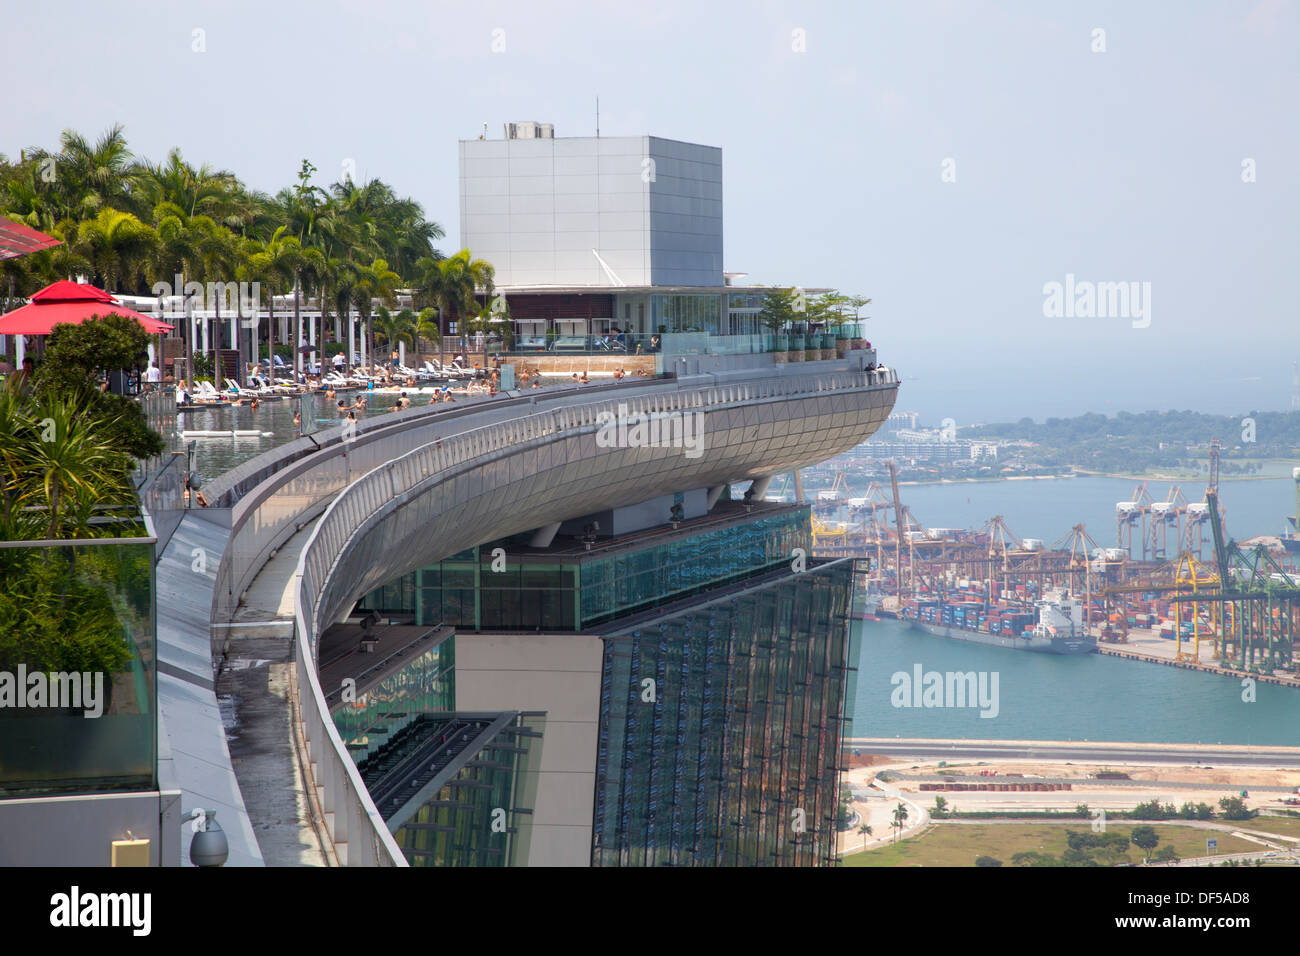 Marina Bay Sands Hotel Roof Pool Singapore Asia Destination View Stock Photo Royalty Free Image